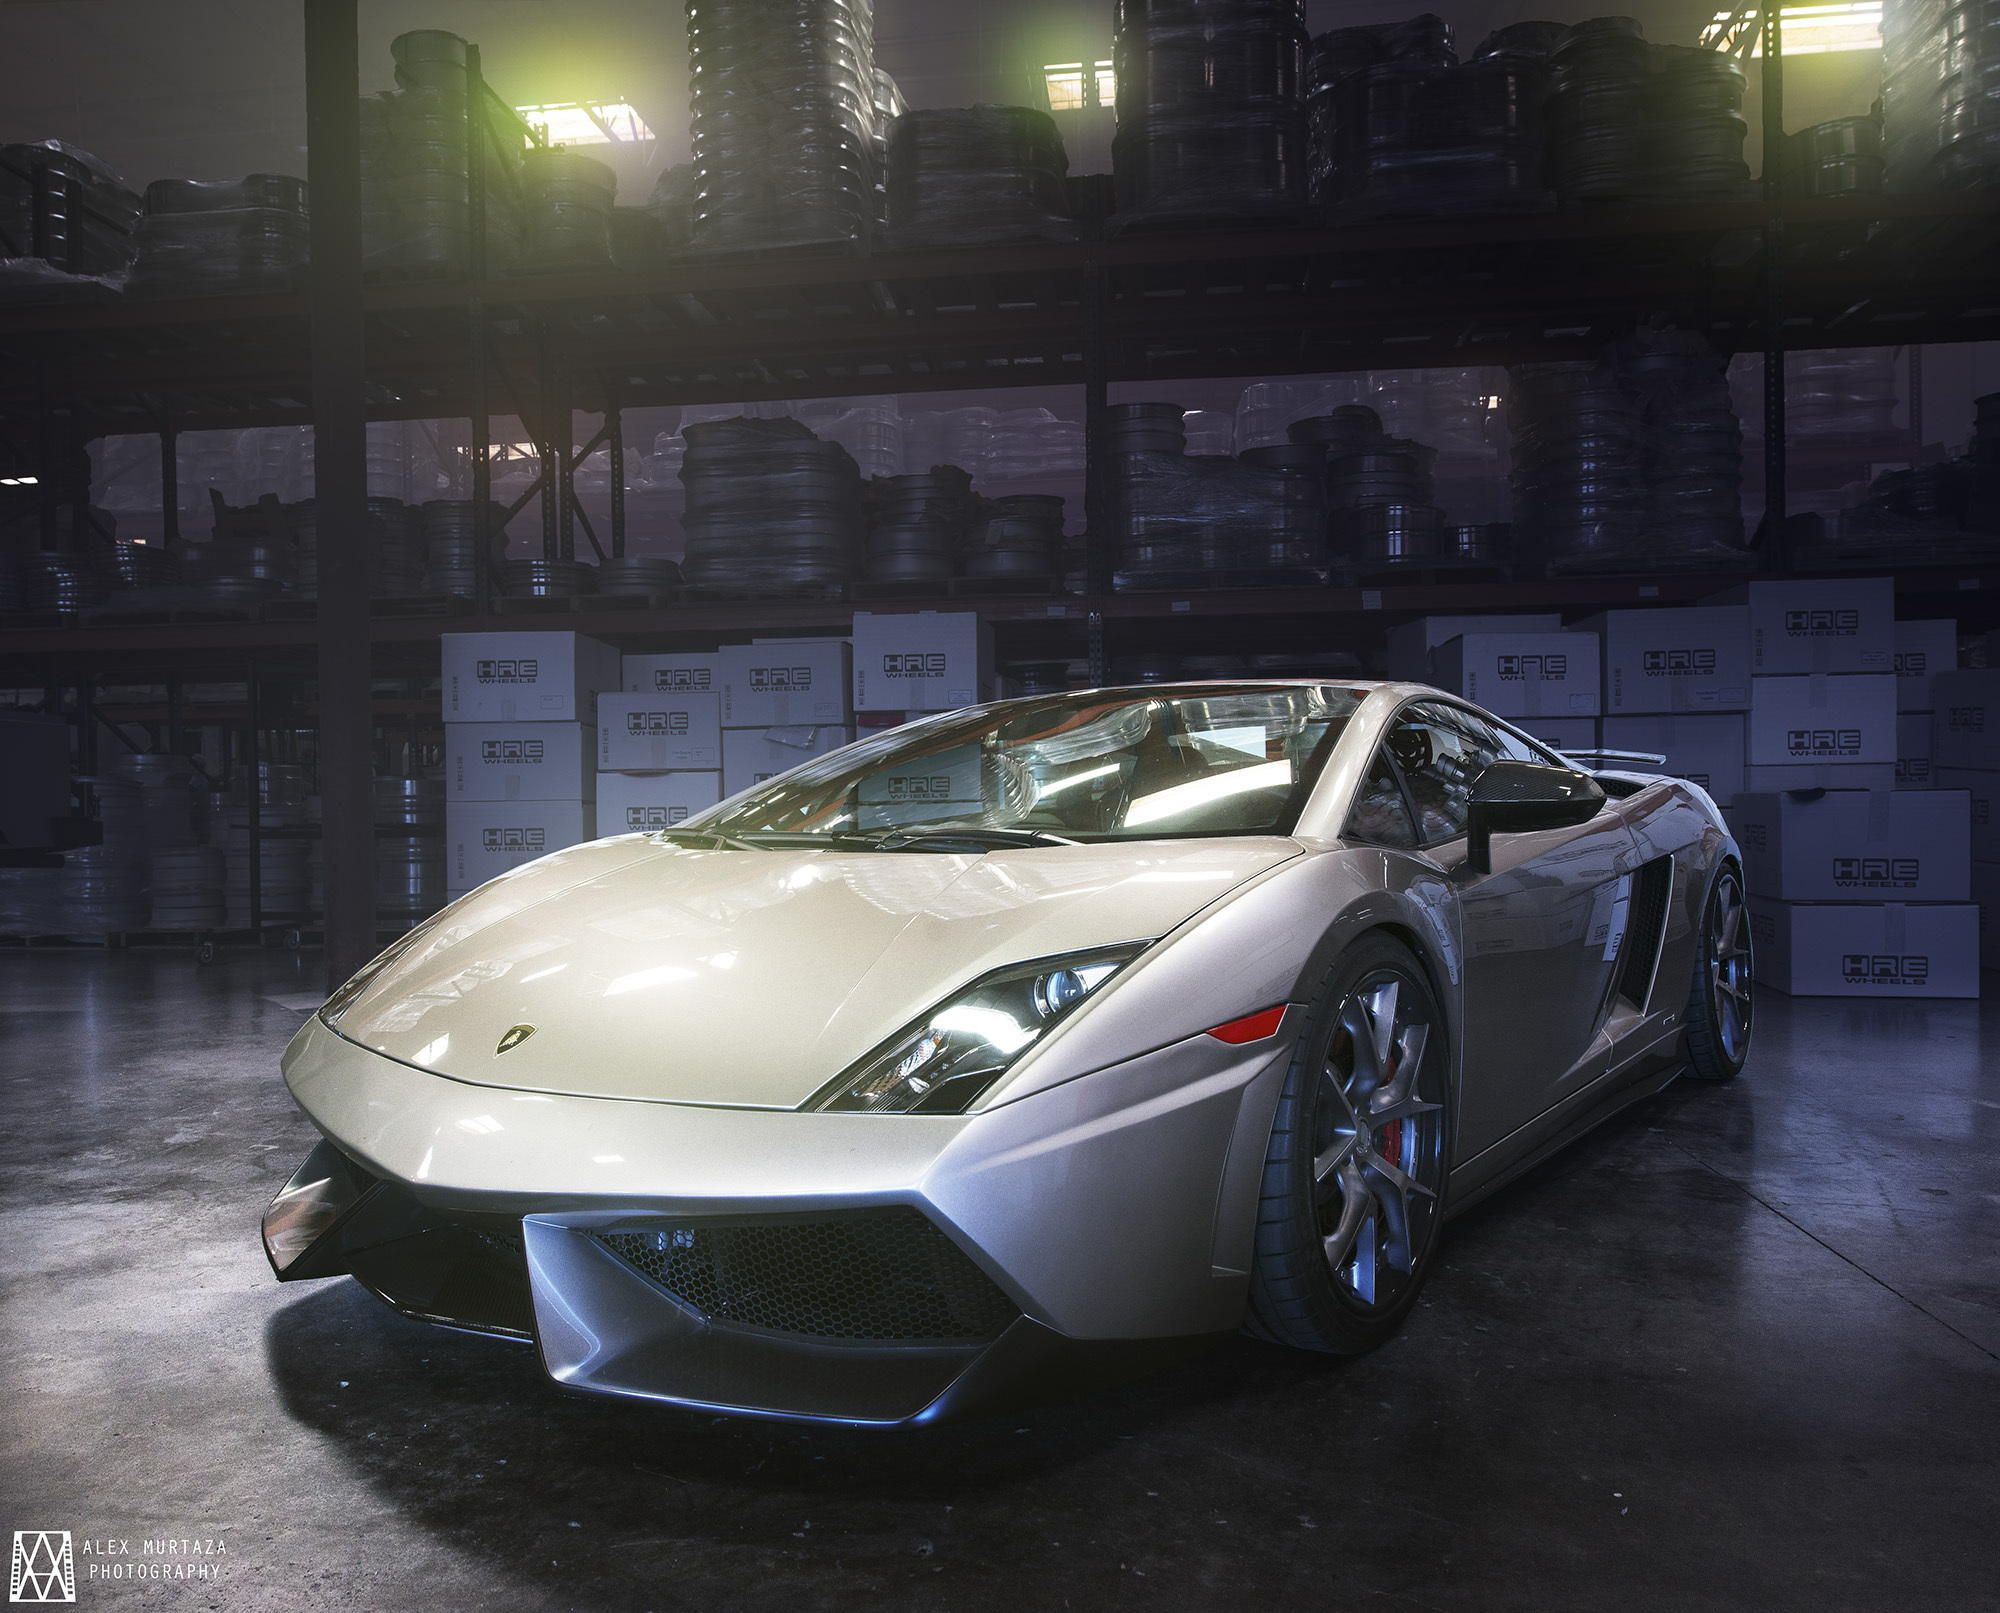 Lamborghini Gallardo LP560 4 Wallpaper | HD Car Wallpapers | Lamborghini |  Pinterest | Lamborghini, Lamborghini Gallardo And Car Wallpapers